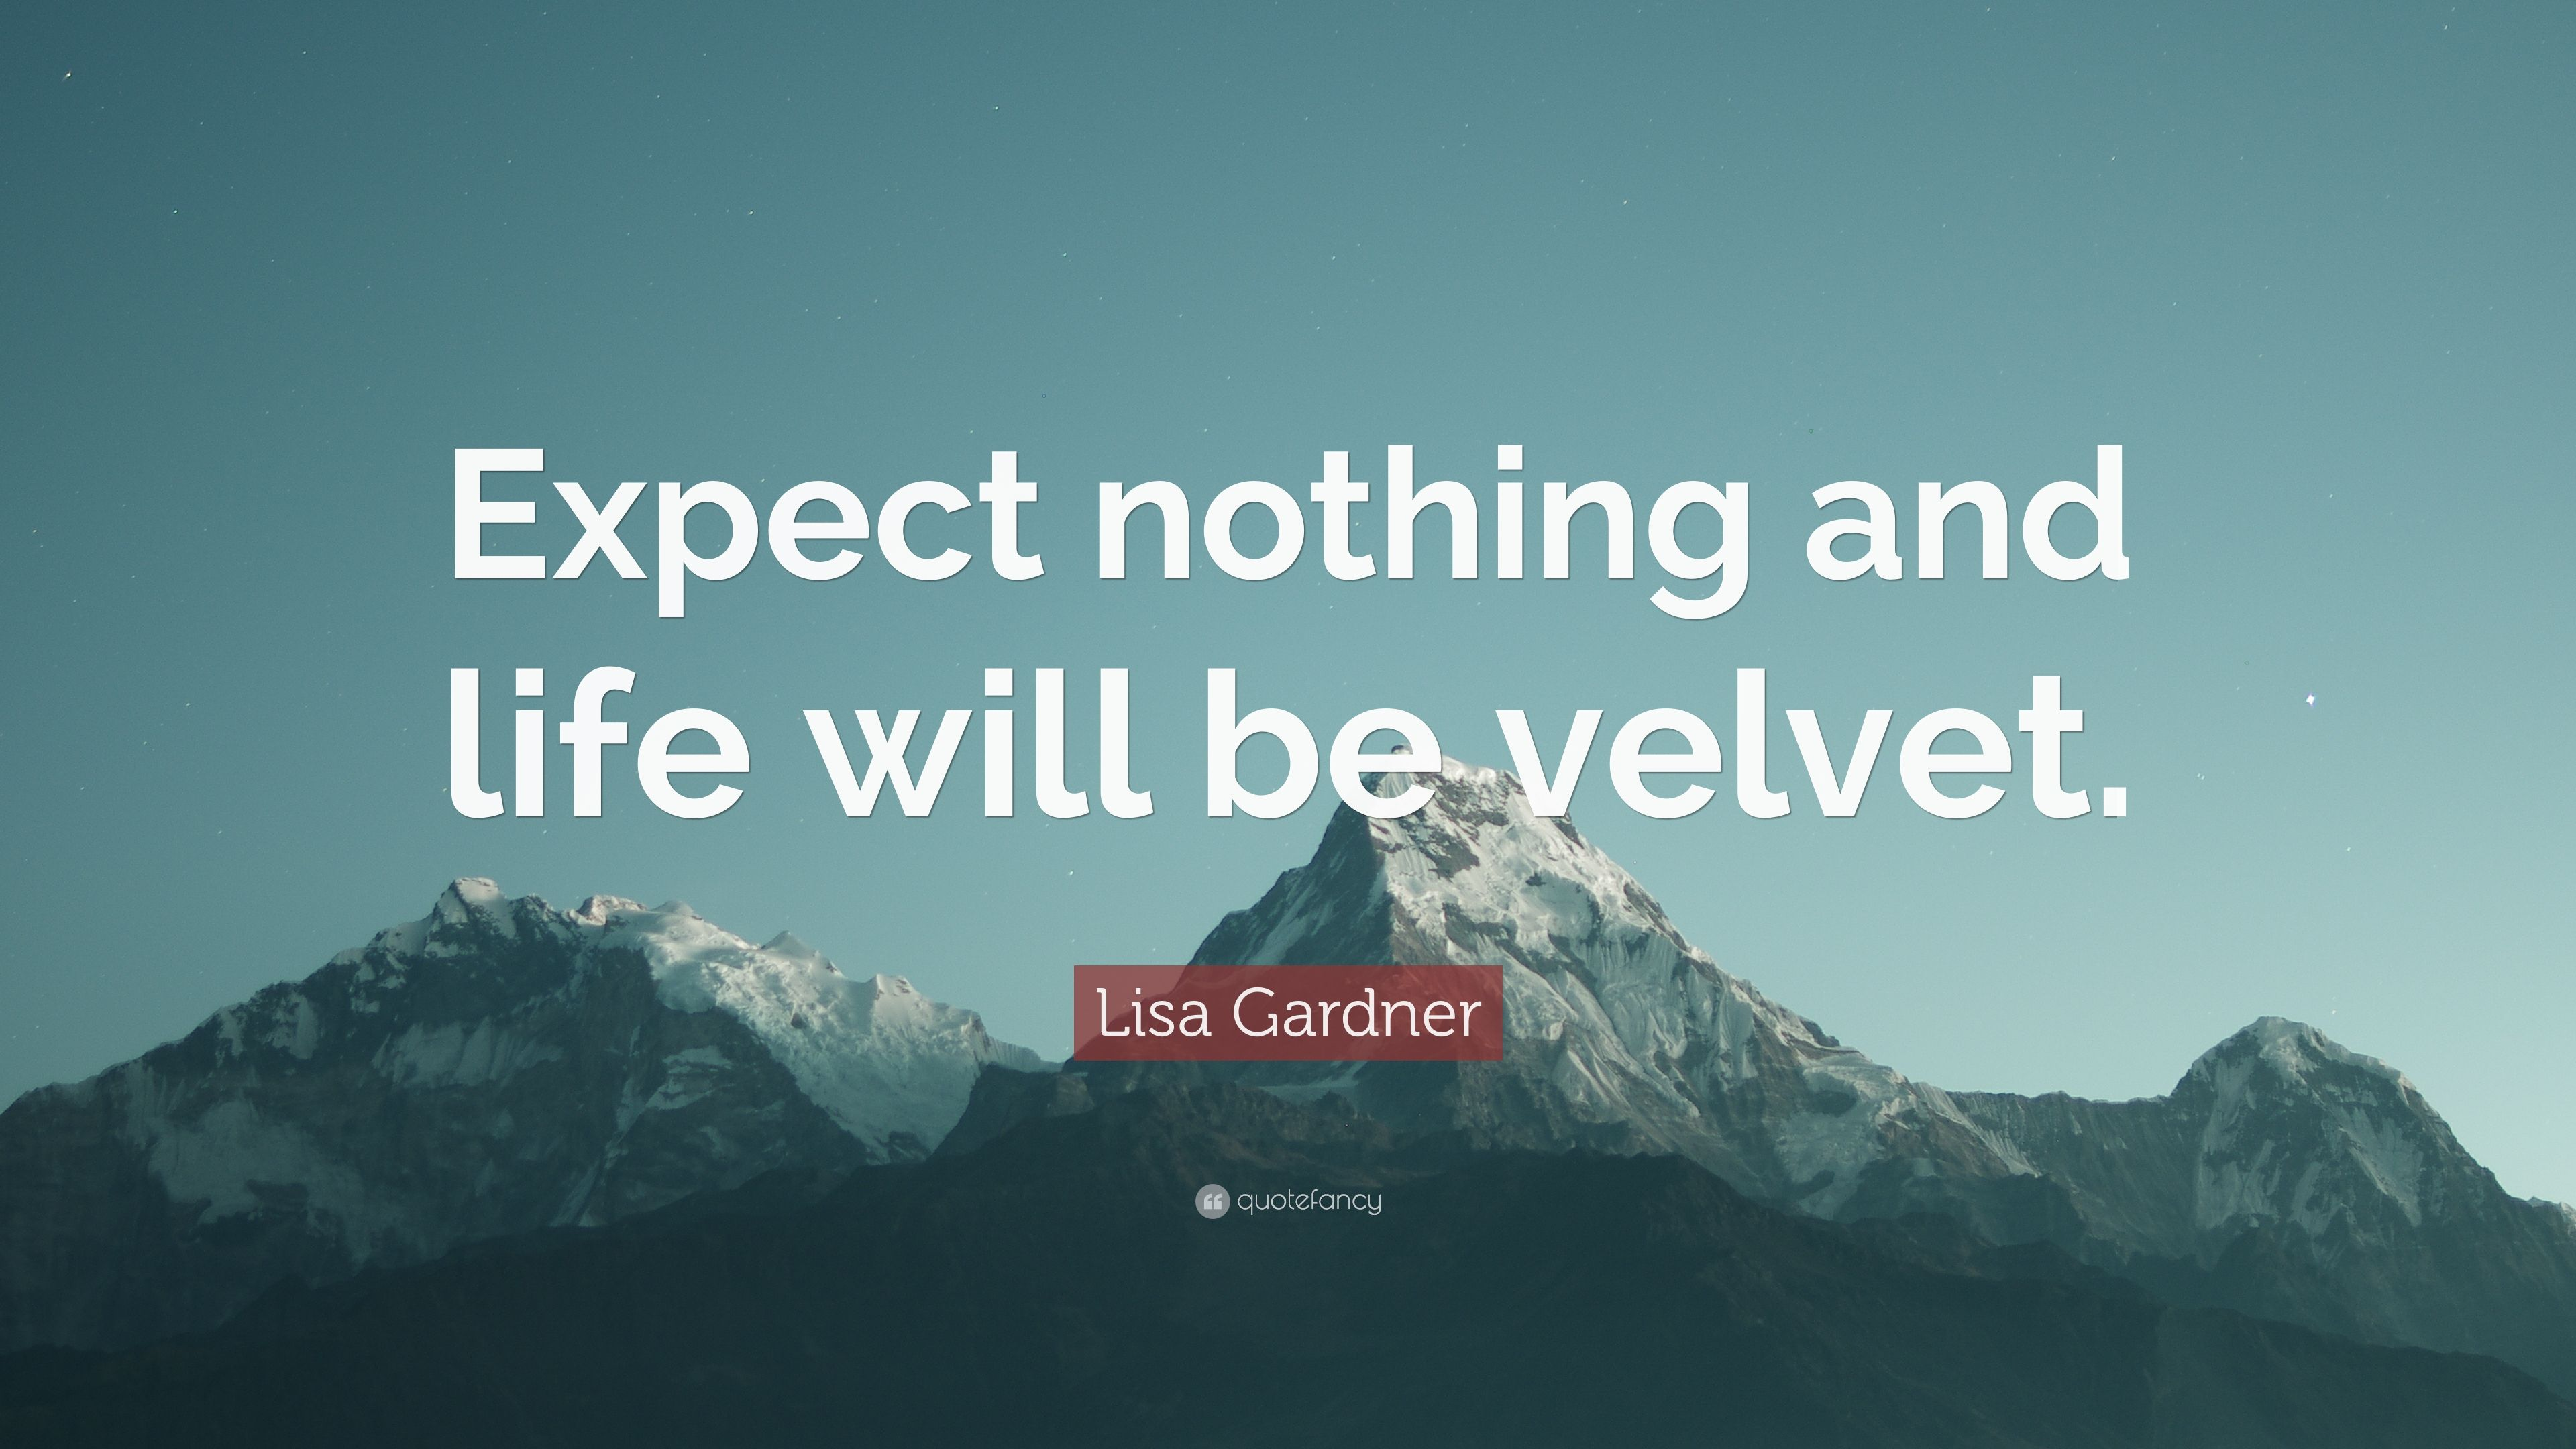 Lisa Gardner Quote: U201cExpect Nothing And Life Will Be Velvet.u201d